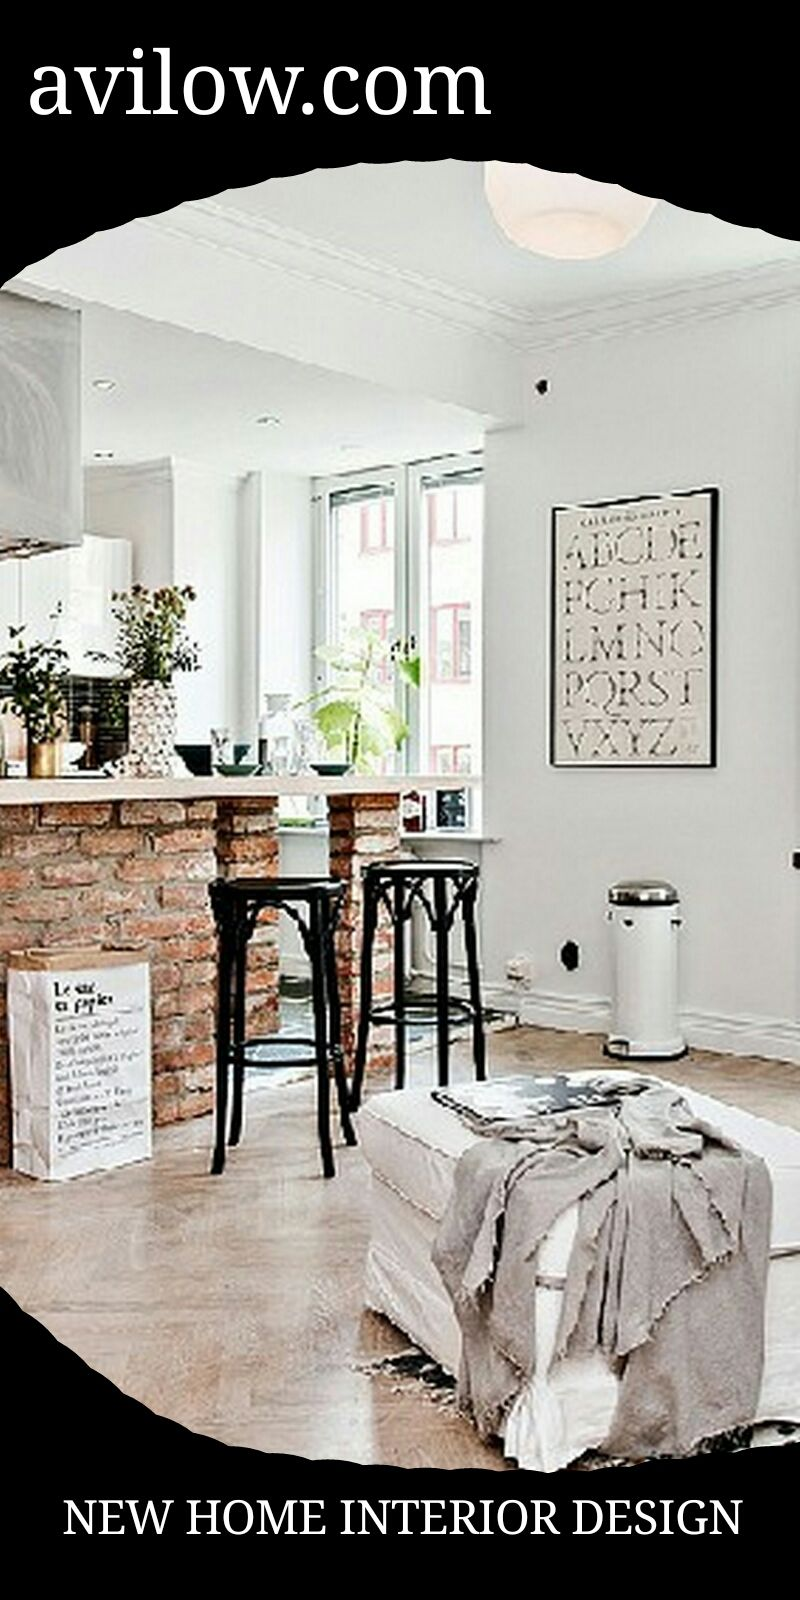 Home interior design photos also inspiring decorating ideas rh pinterest